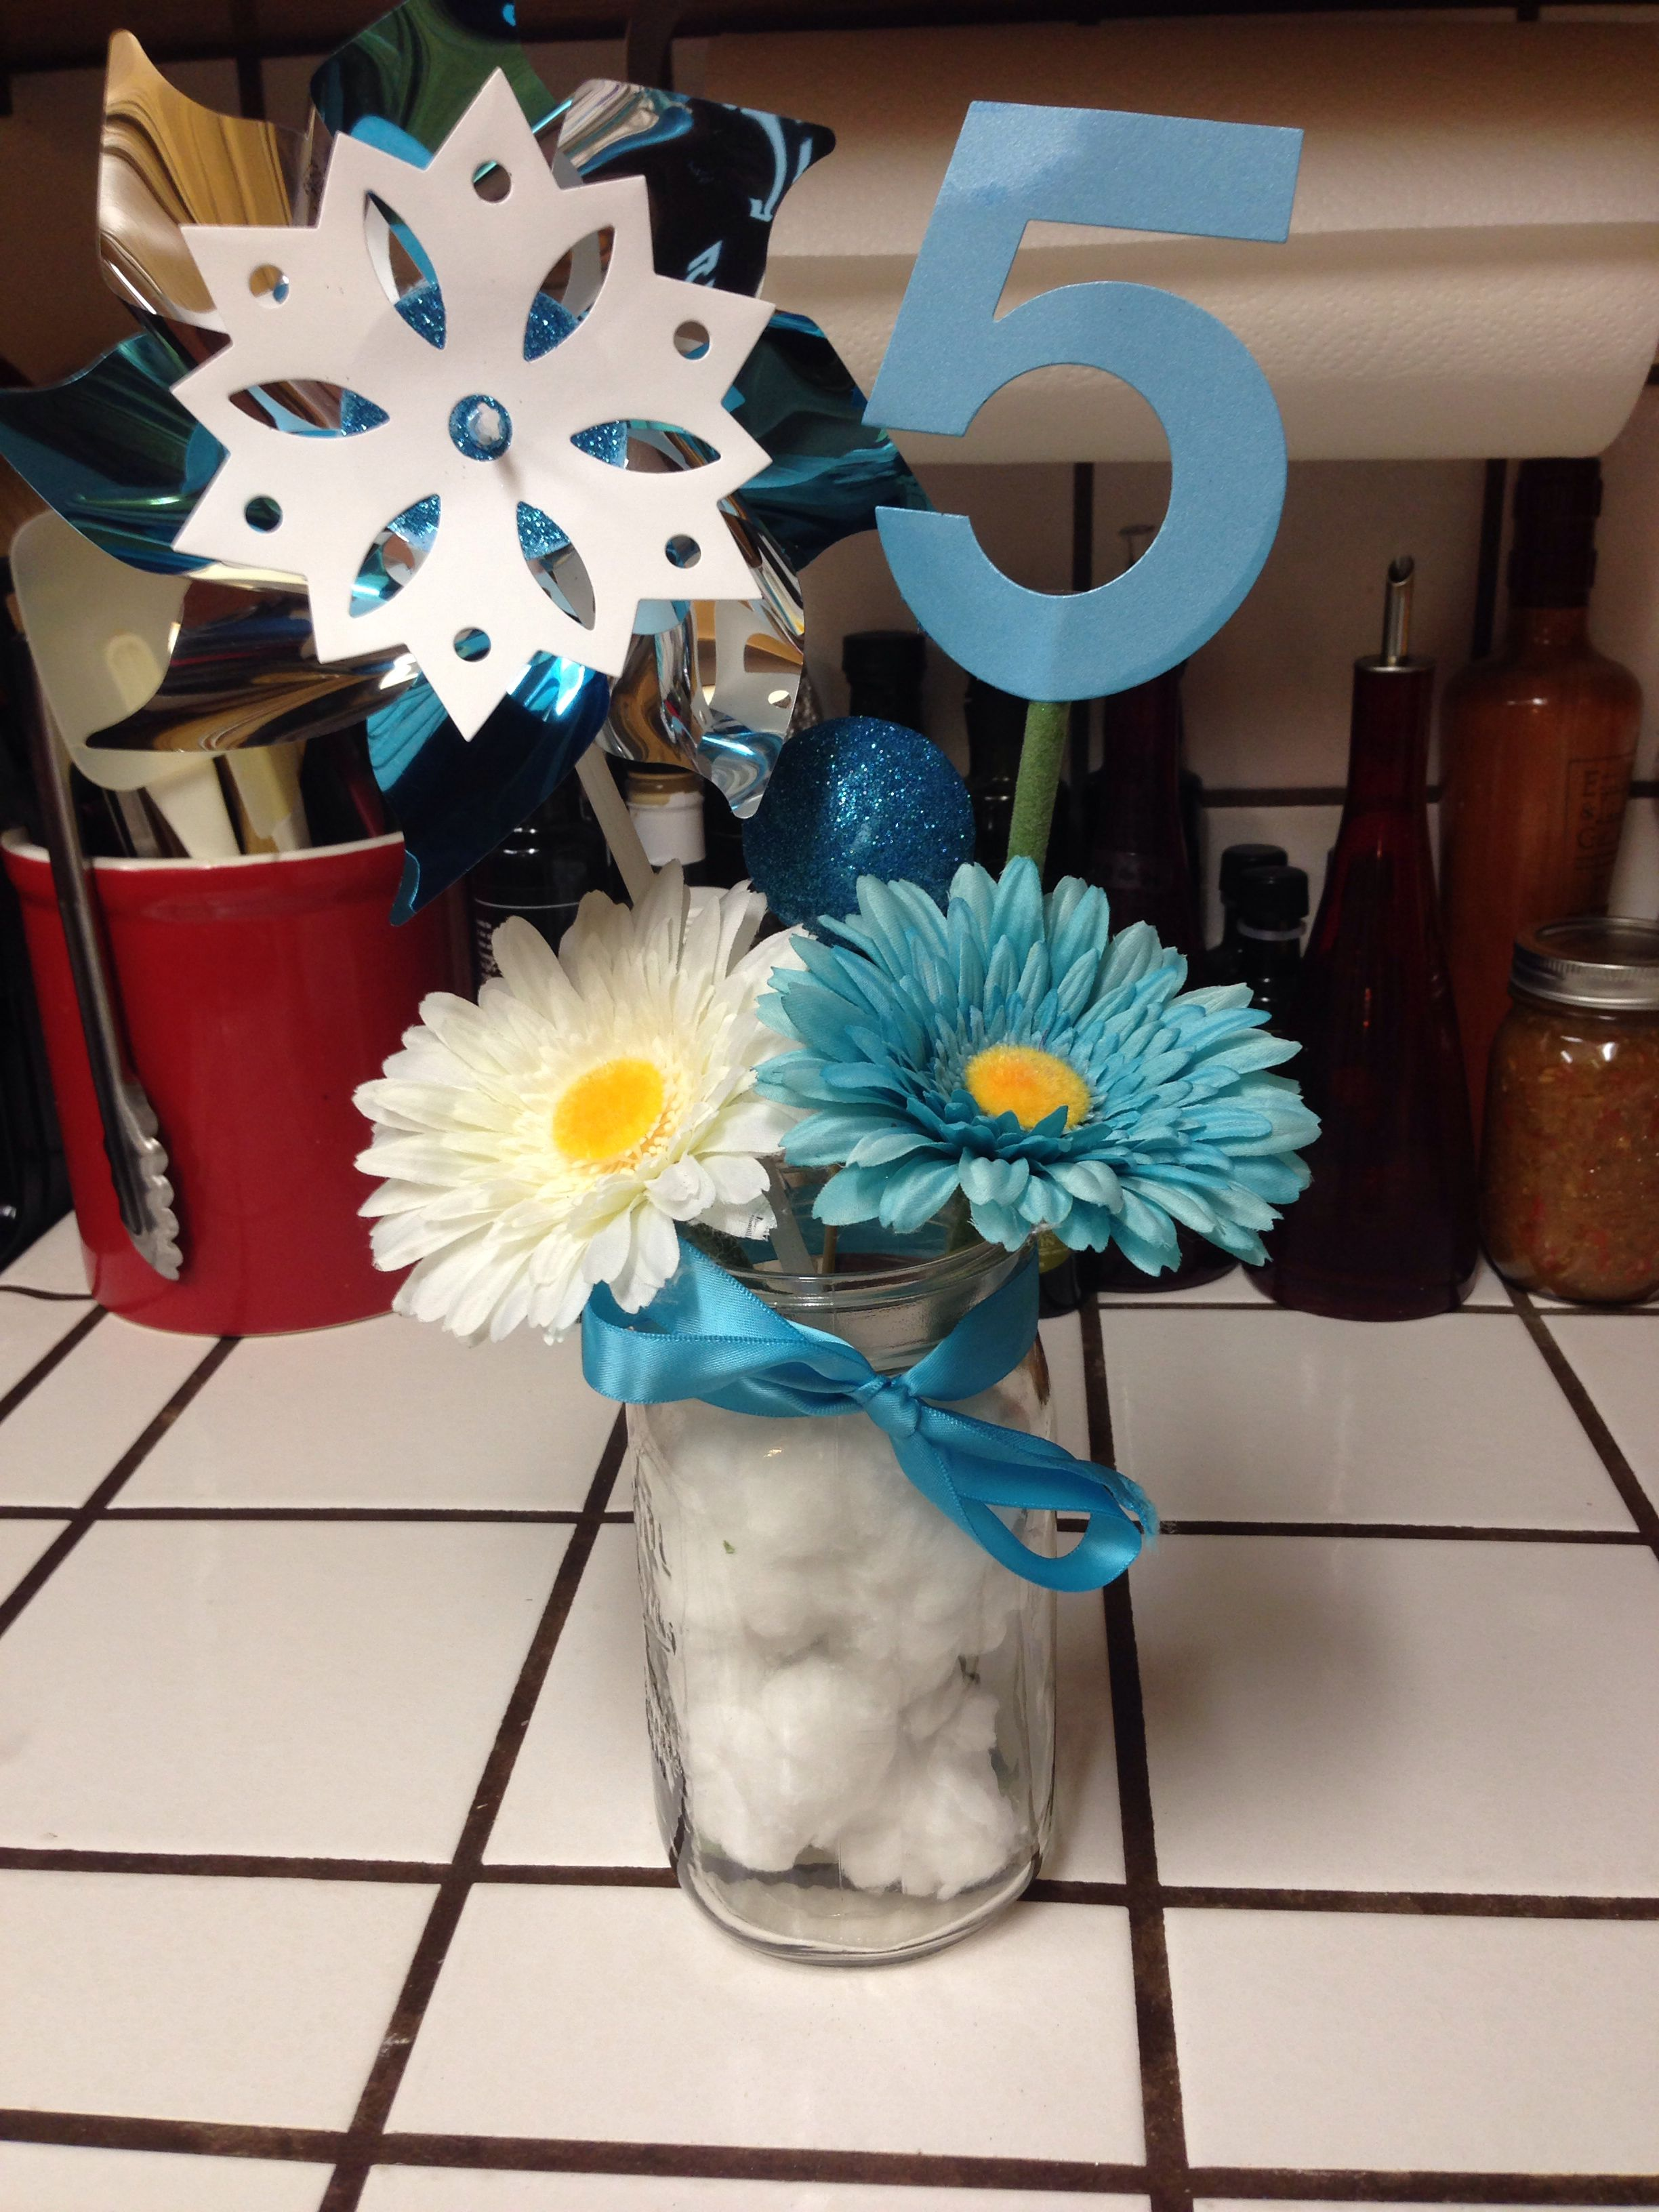 Disney Frozen Theme DIY - decorations or table ...